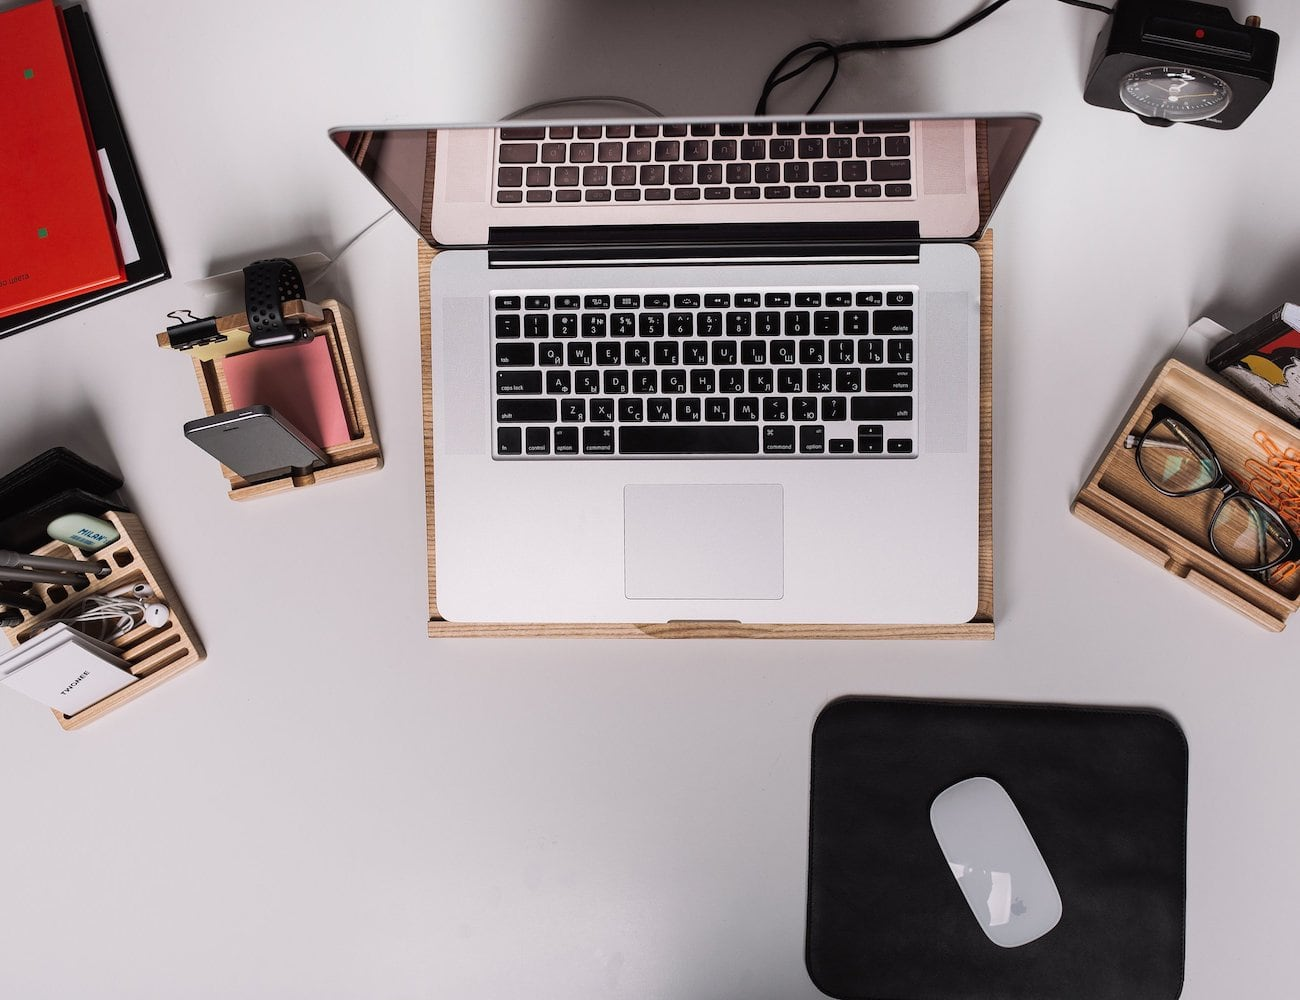 Wooden Desk Organizer Set keeps your desktop neat and tidy